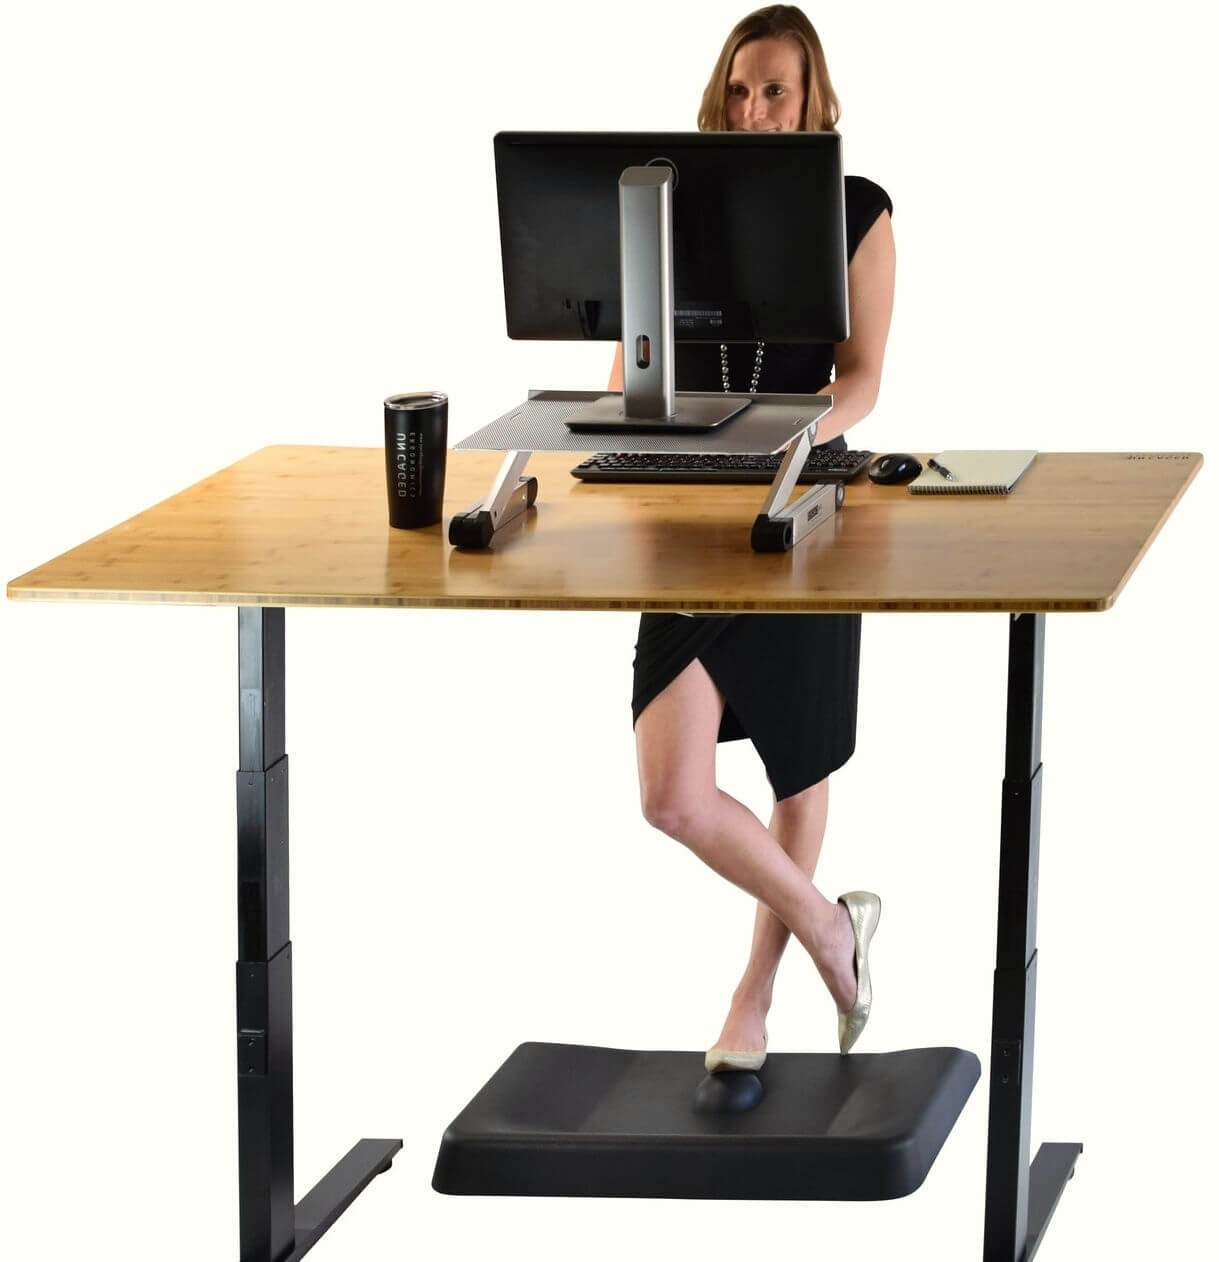 Active Standing Desk Mat made by Uncaged Ergonomics